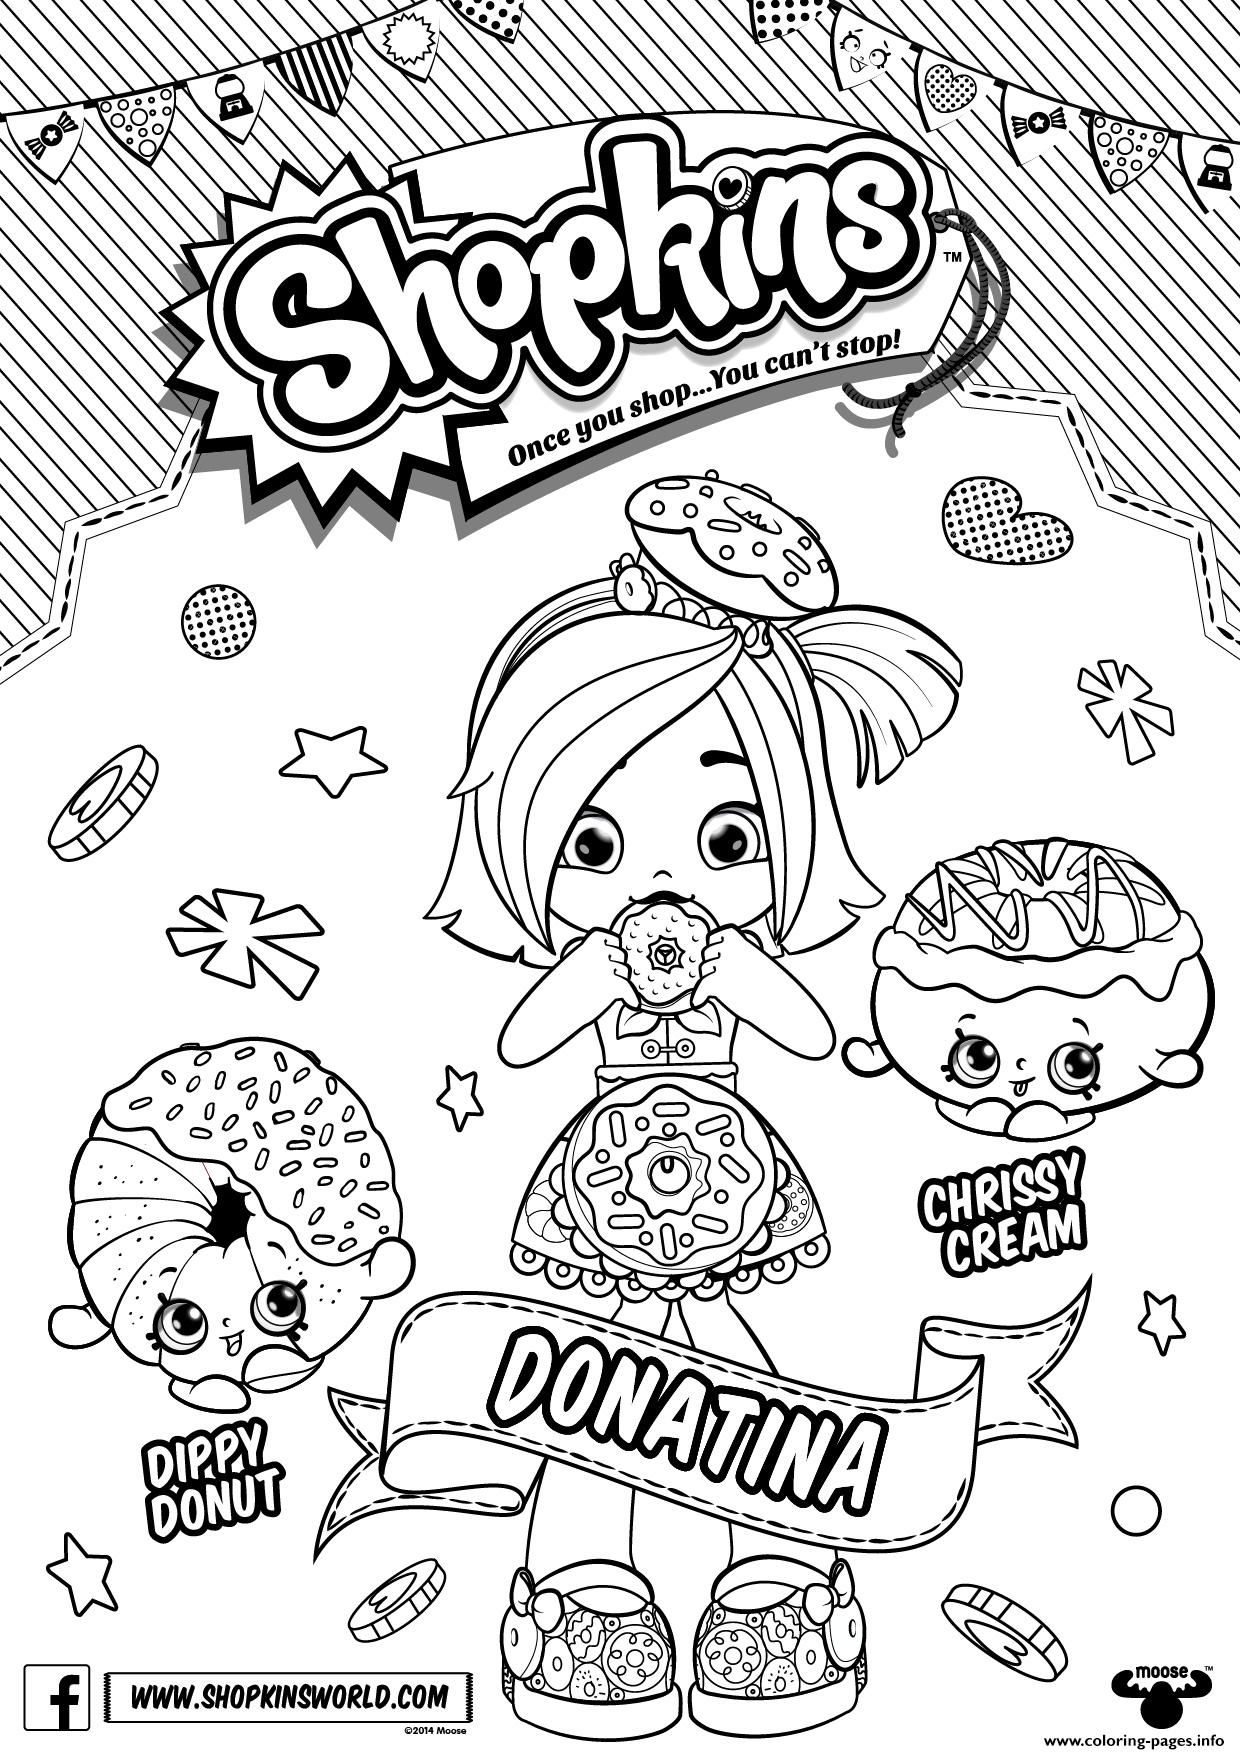 Shopkins coloring pages to print out - Shopkins Season 6 Doll Chef Club Donatina Coloring Pages Printable And Coloring Book To Print For Free Find More Coloring Pages Online For Kids And Adults